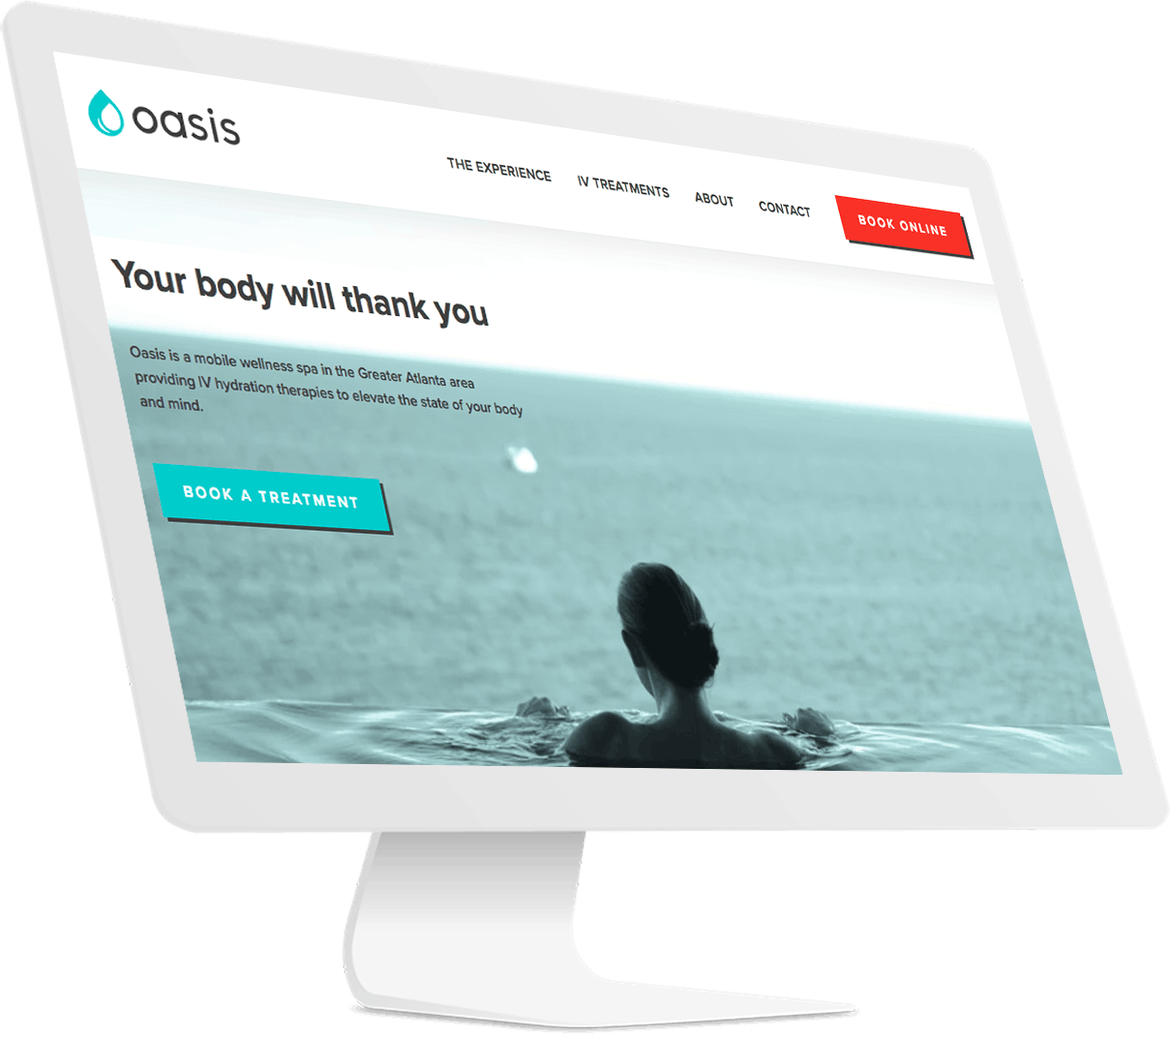 Oasis Hydration website